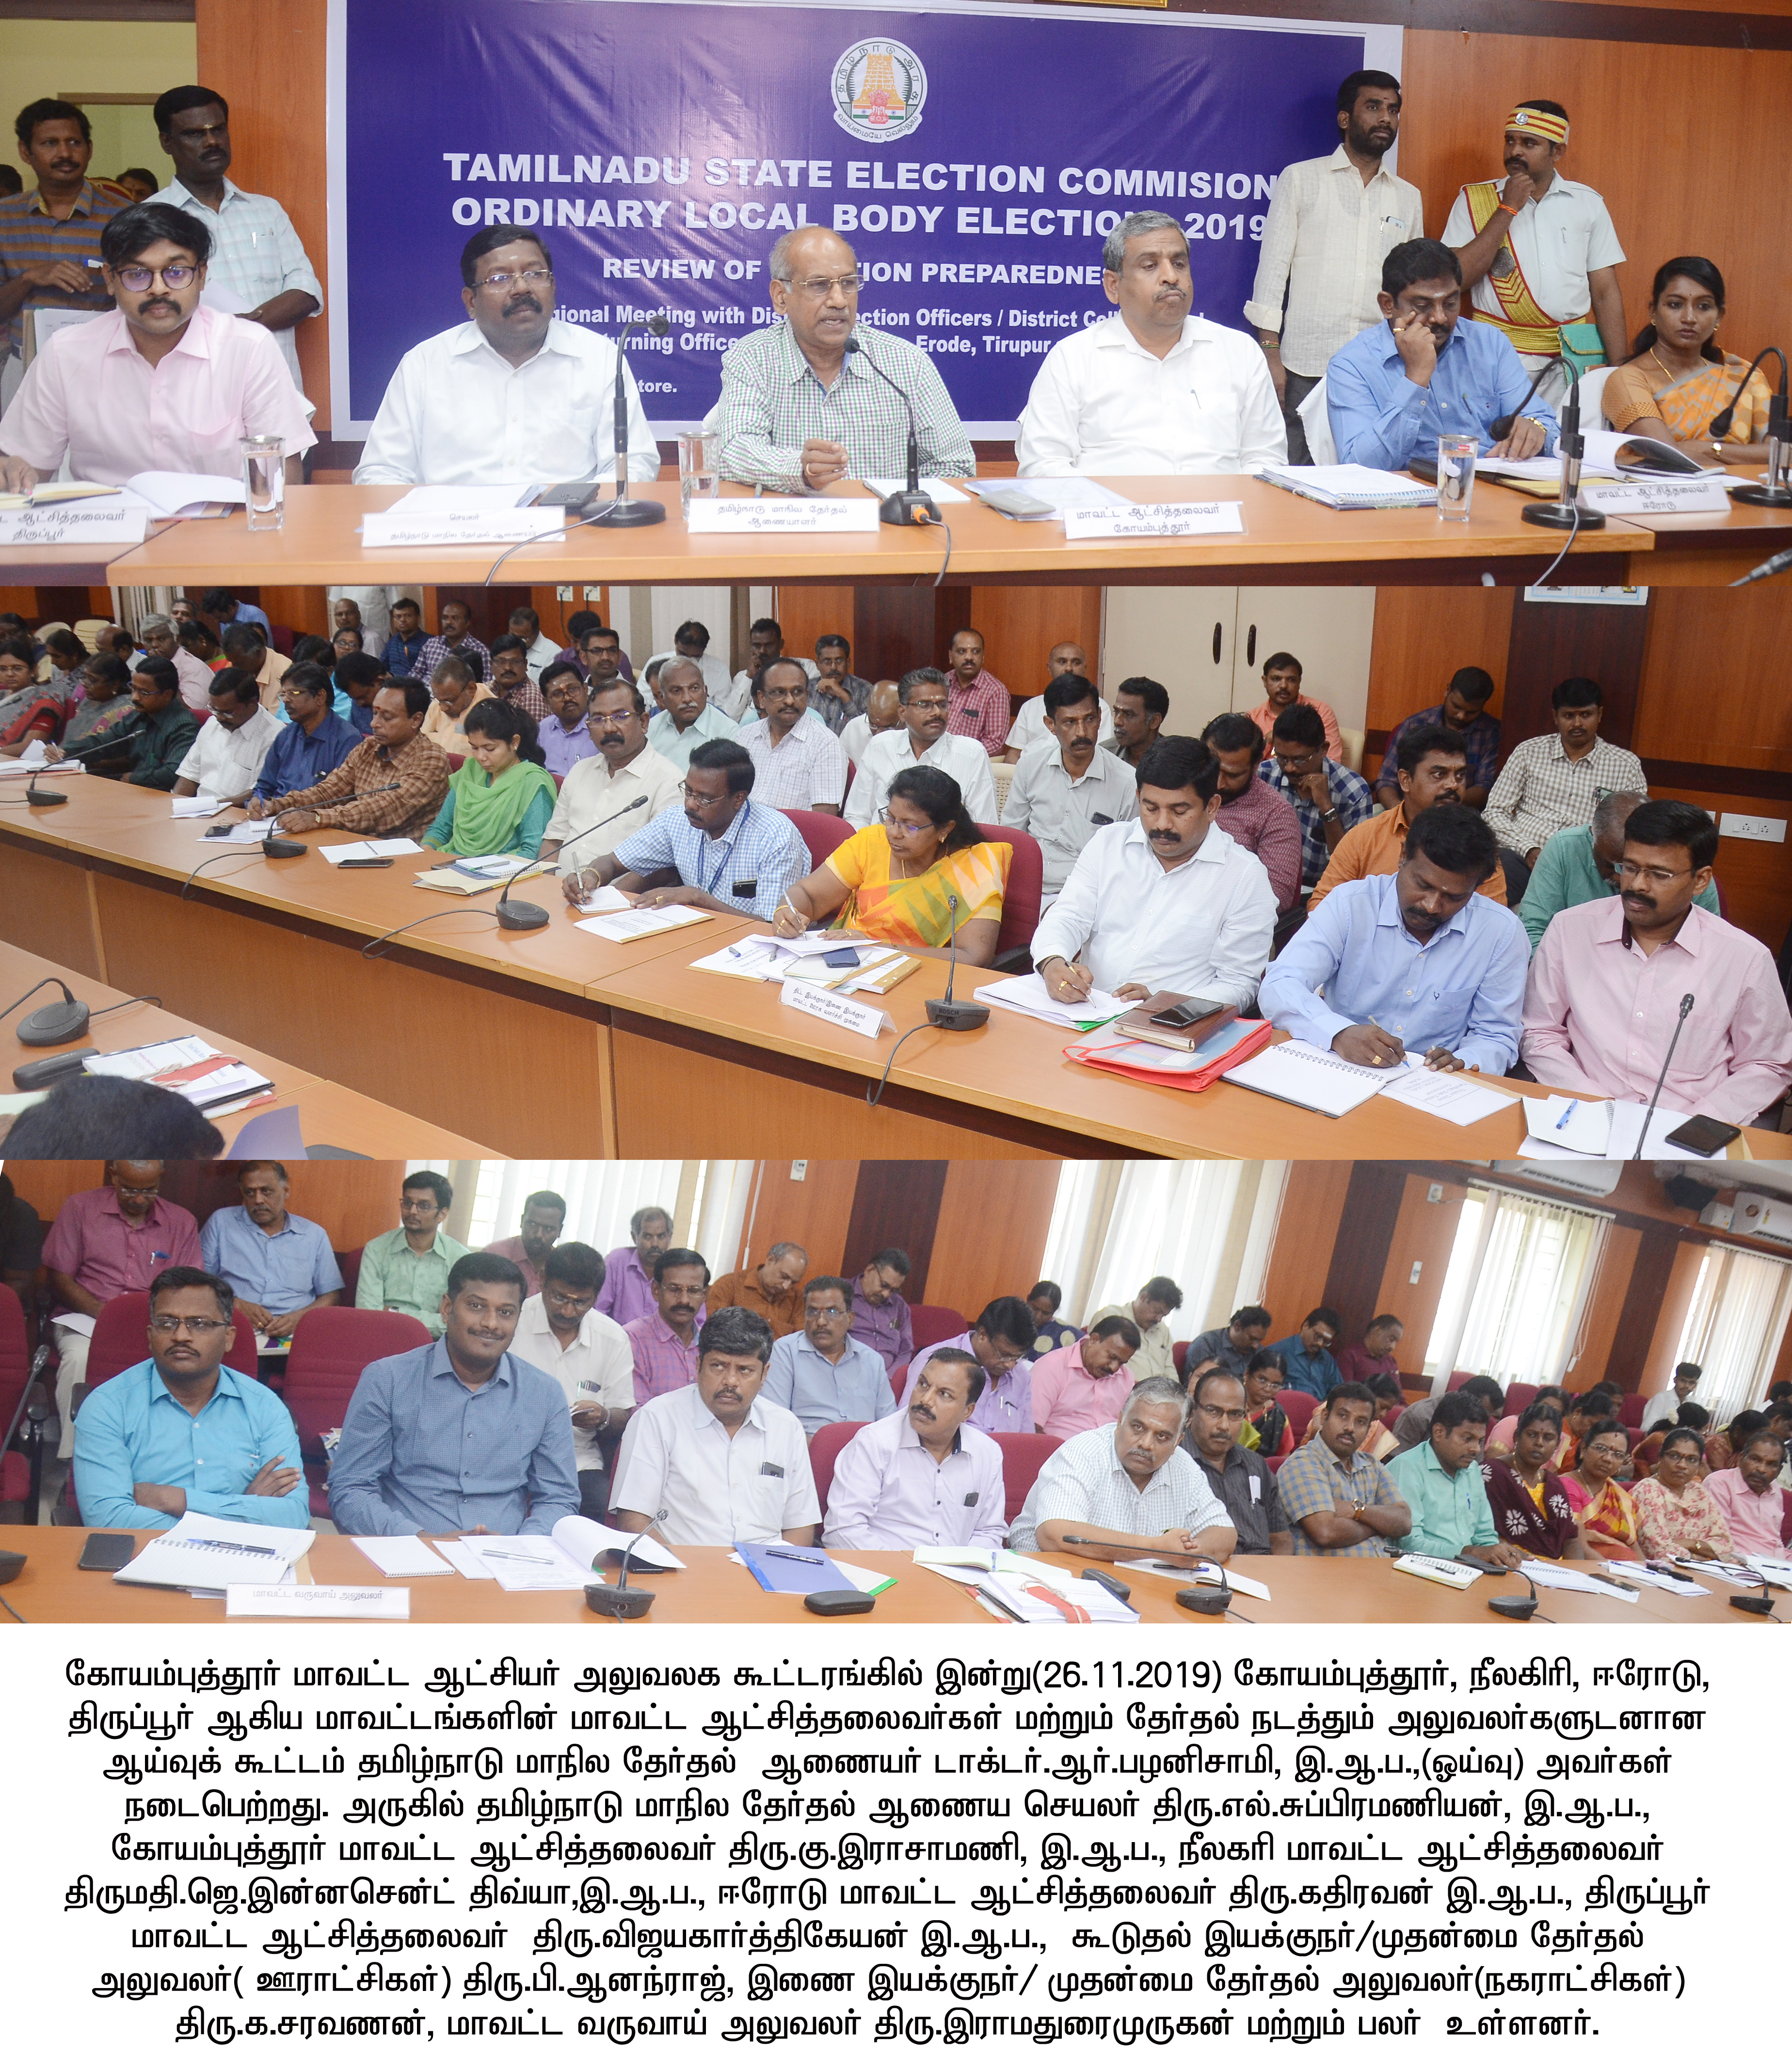 Local Body Election work review meeting held